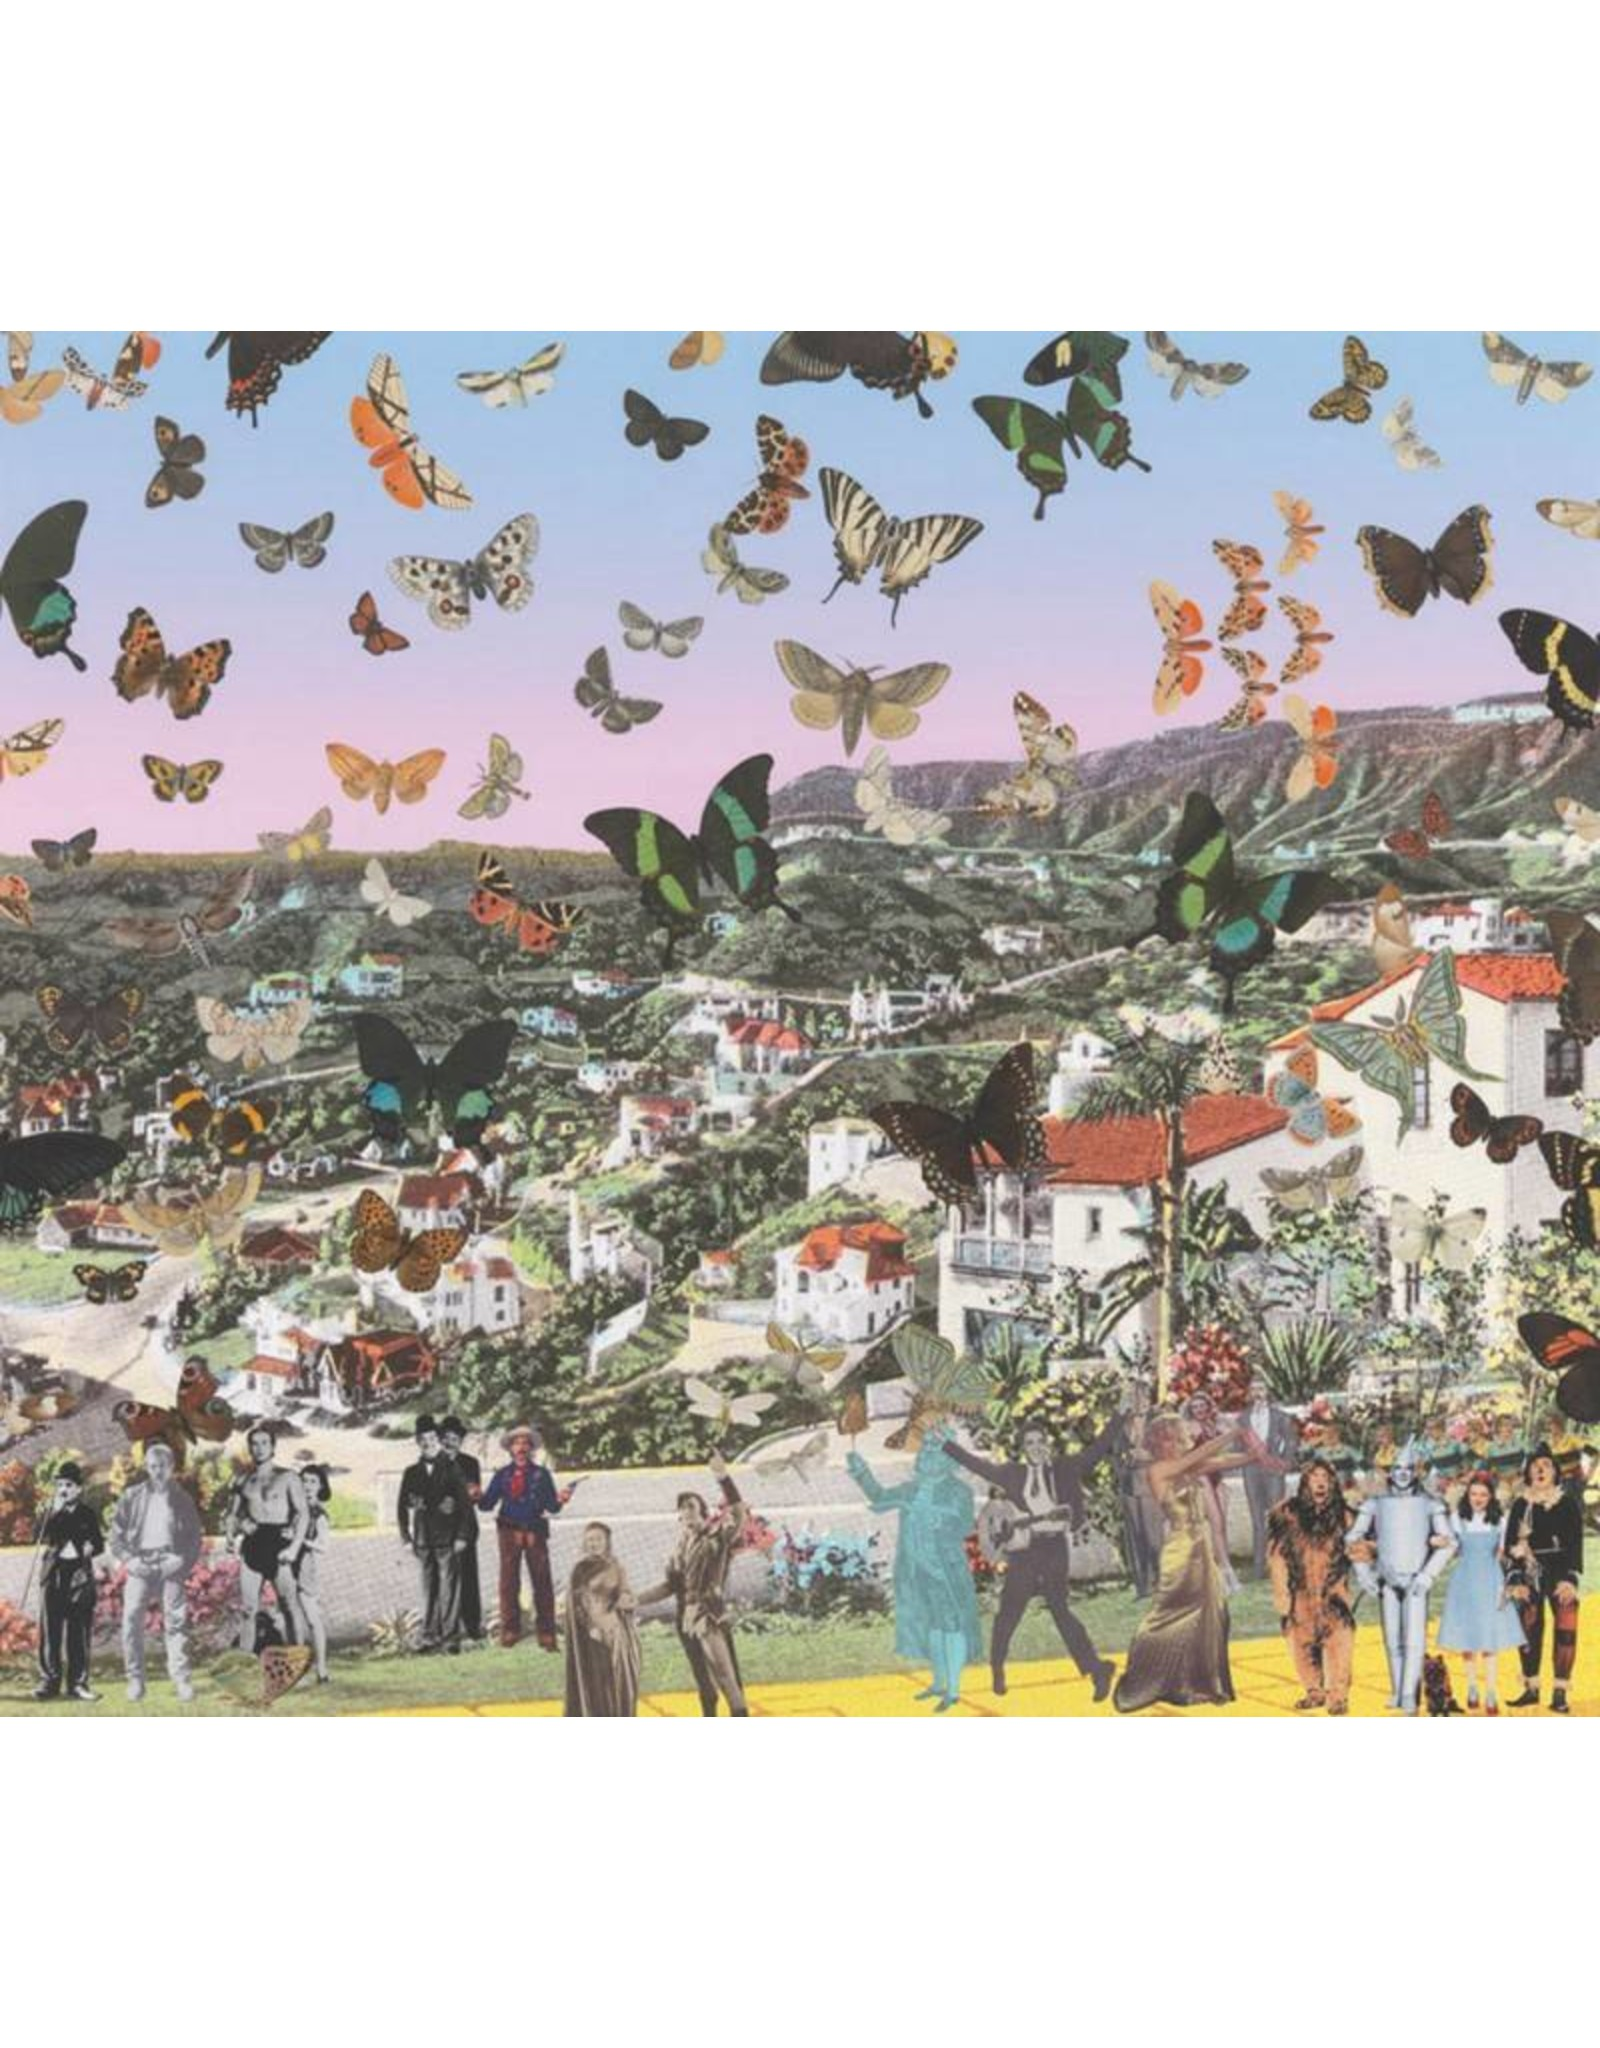 Butterfly Man in Hollywoodland